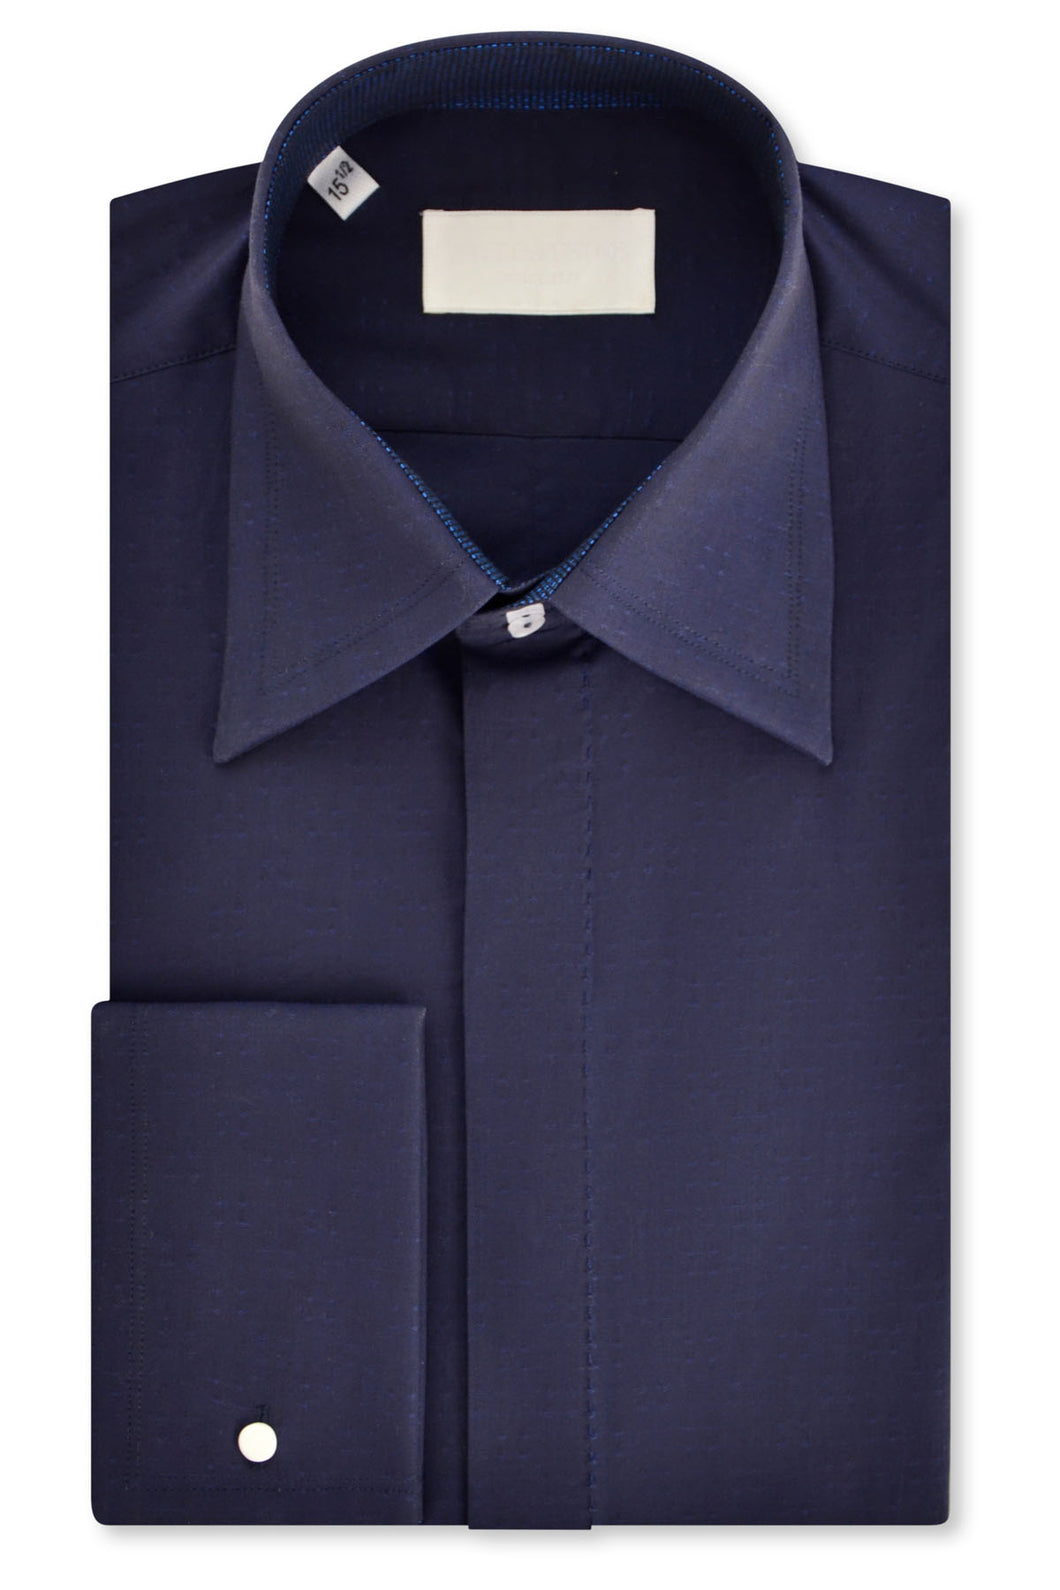 Navy Forward Point Collar Shirt with Matching Tie